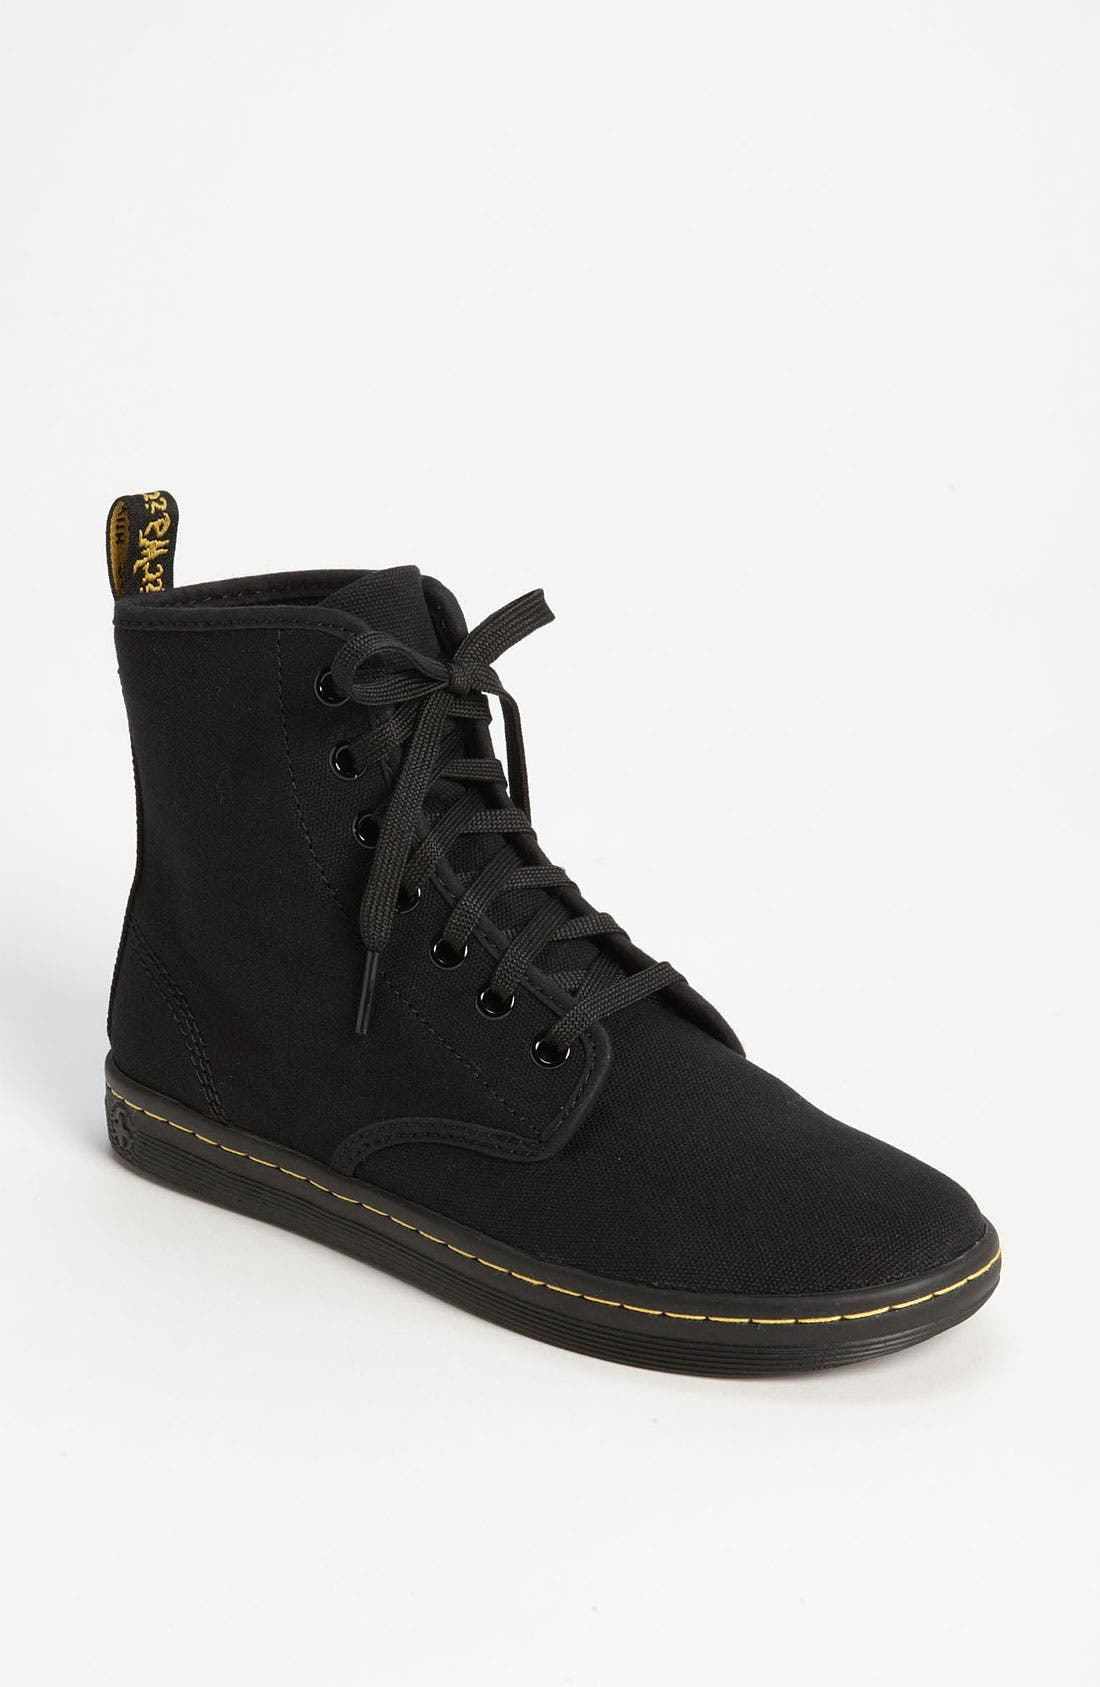 Alternate Image 1 Selected - Dr. Martens 'Shoreditch' Boot